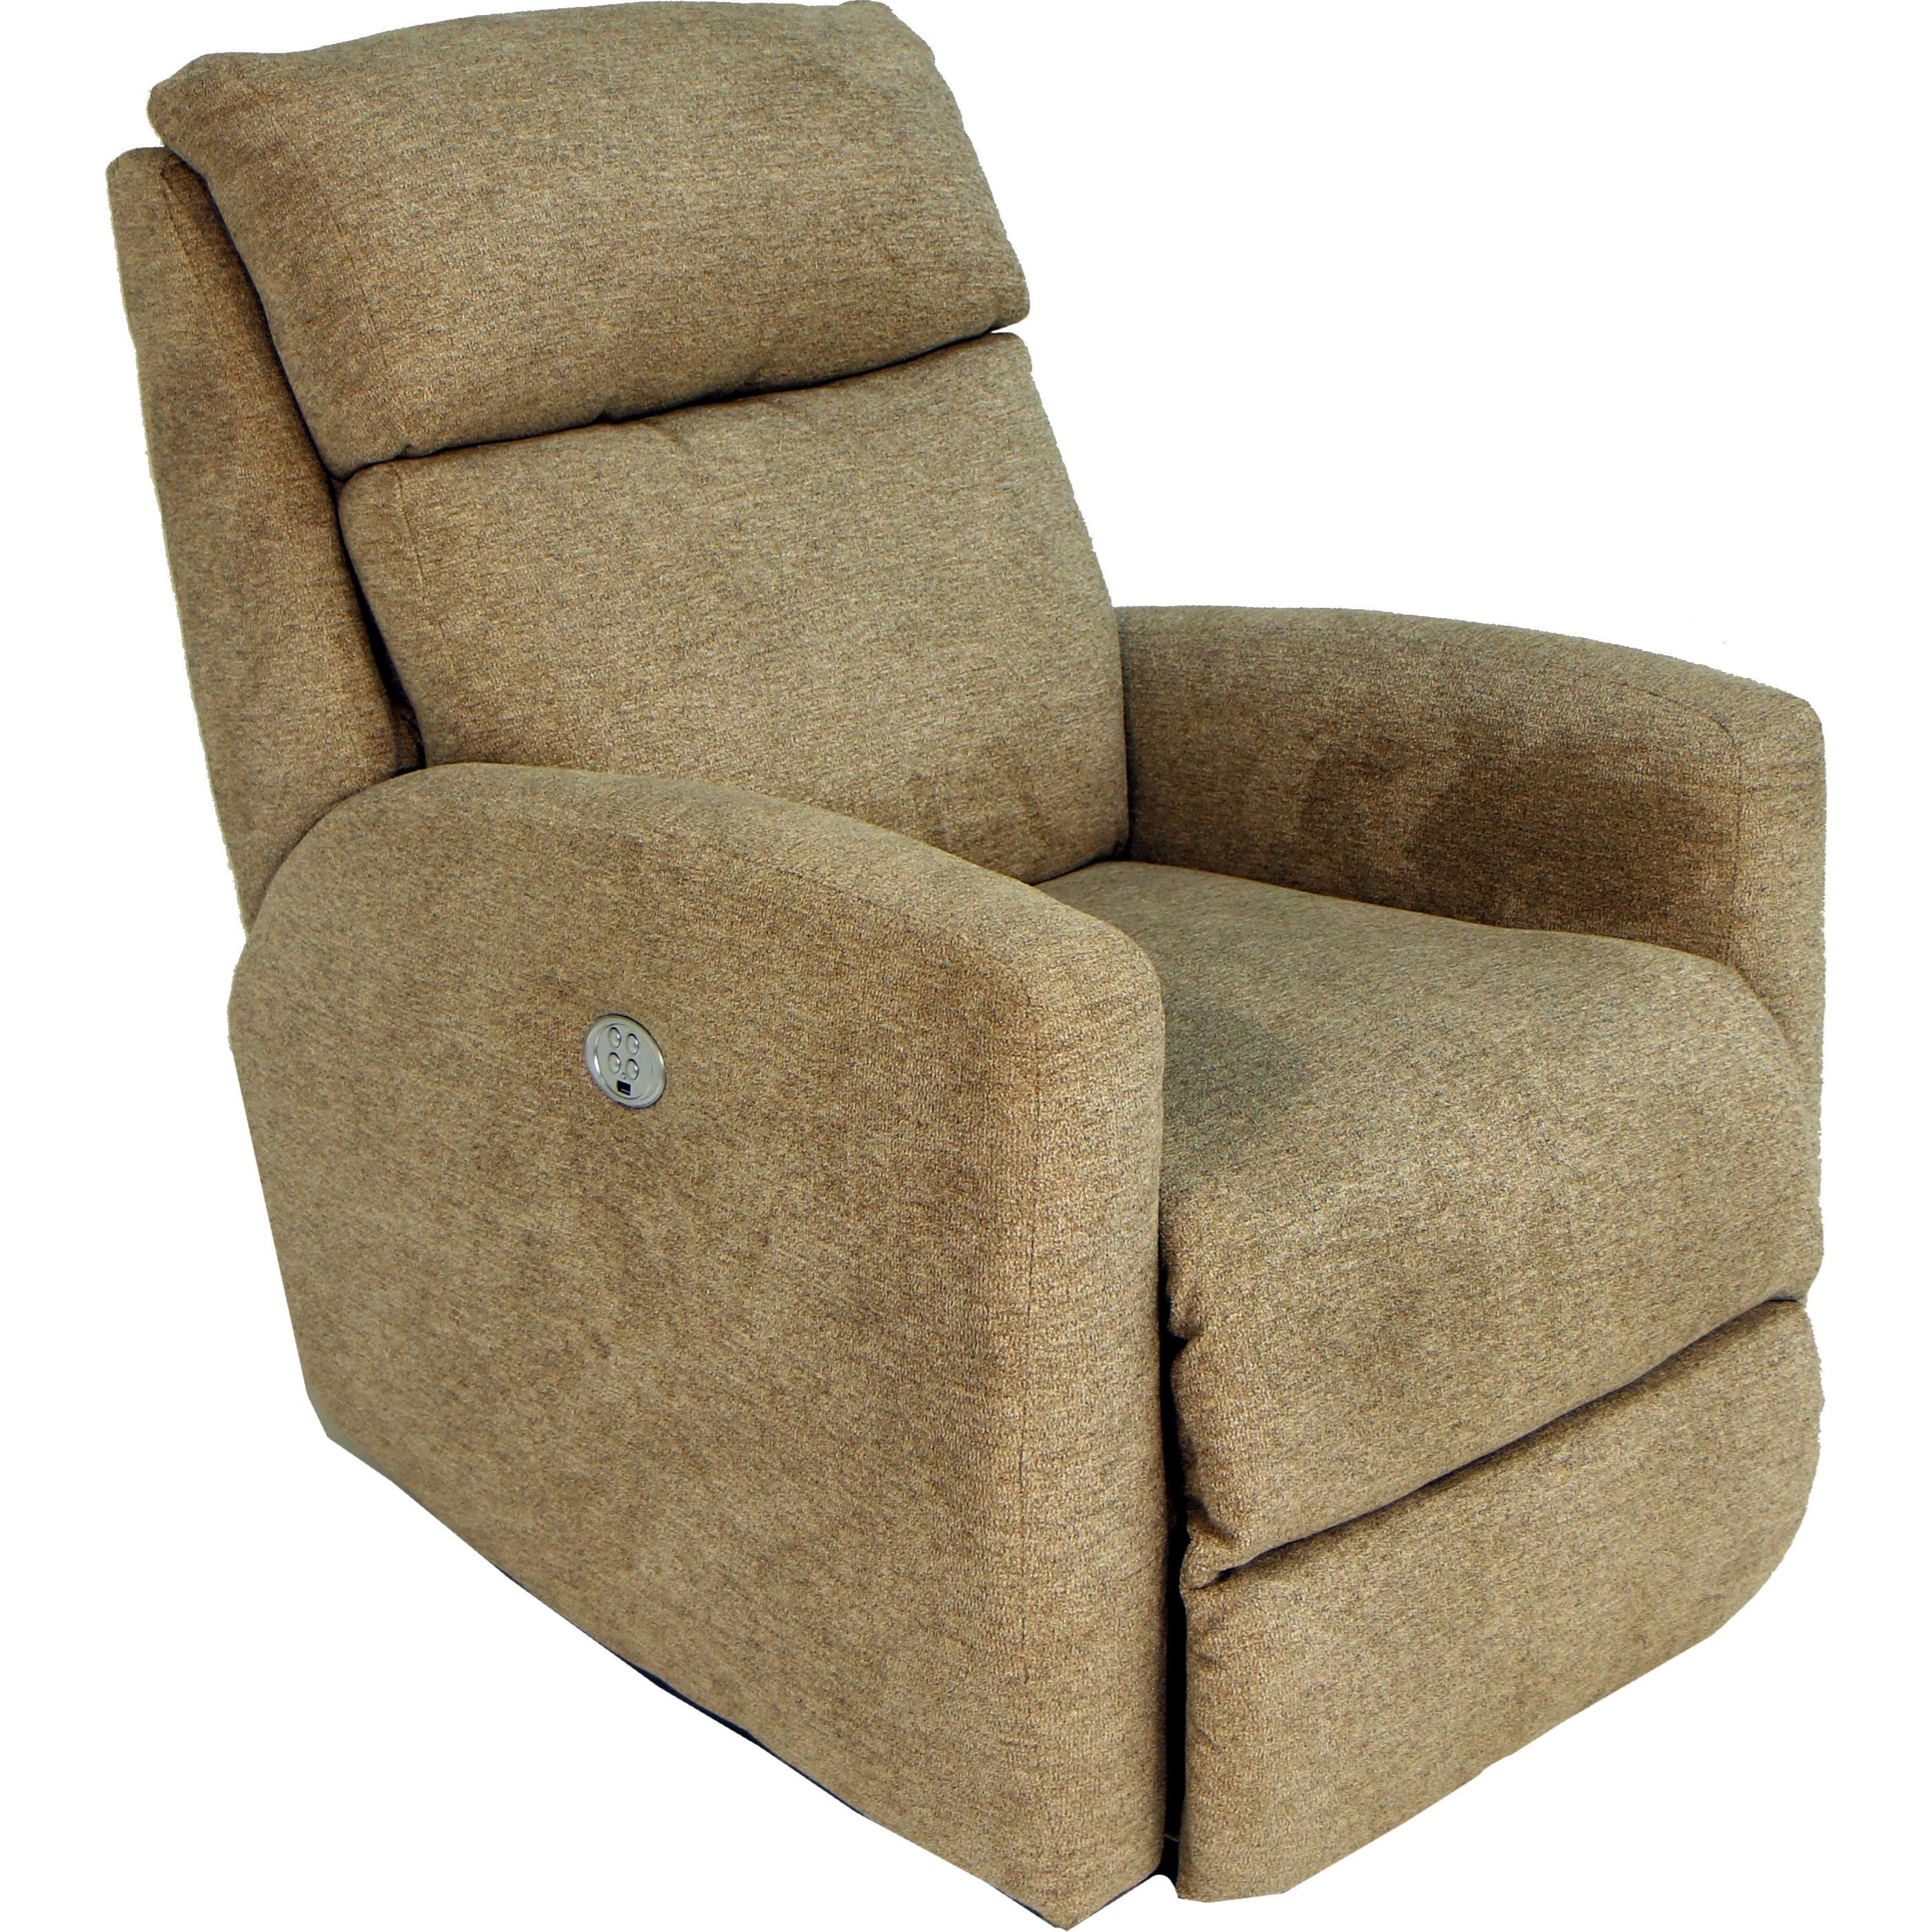 Primo Power Headrest Layflat Lift SoCozi Recliner by Southern Motion at Value City Furniture